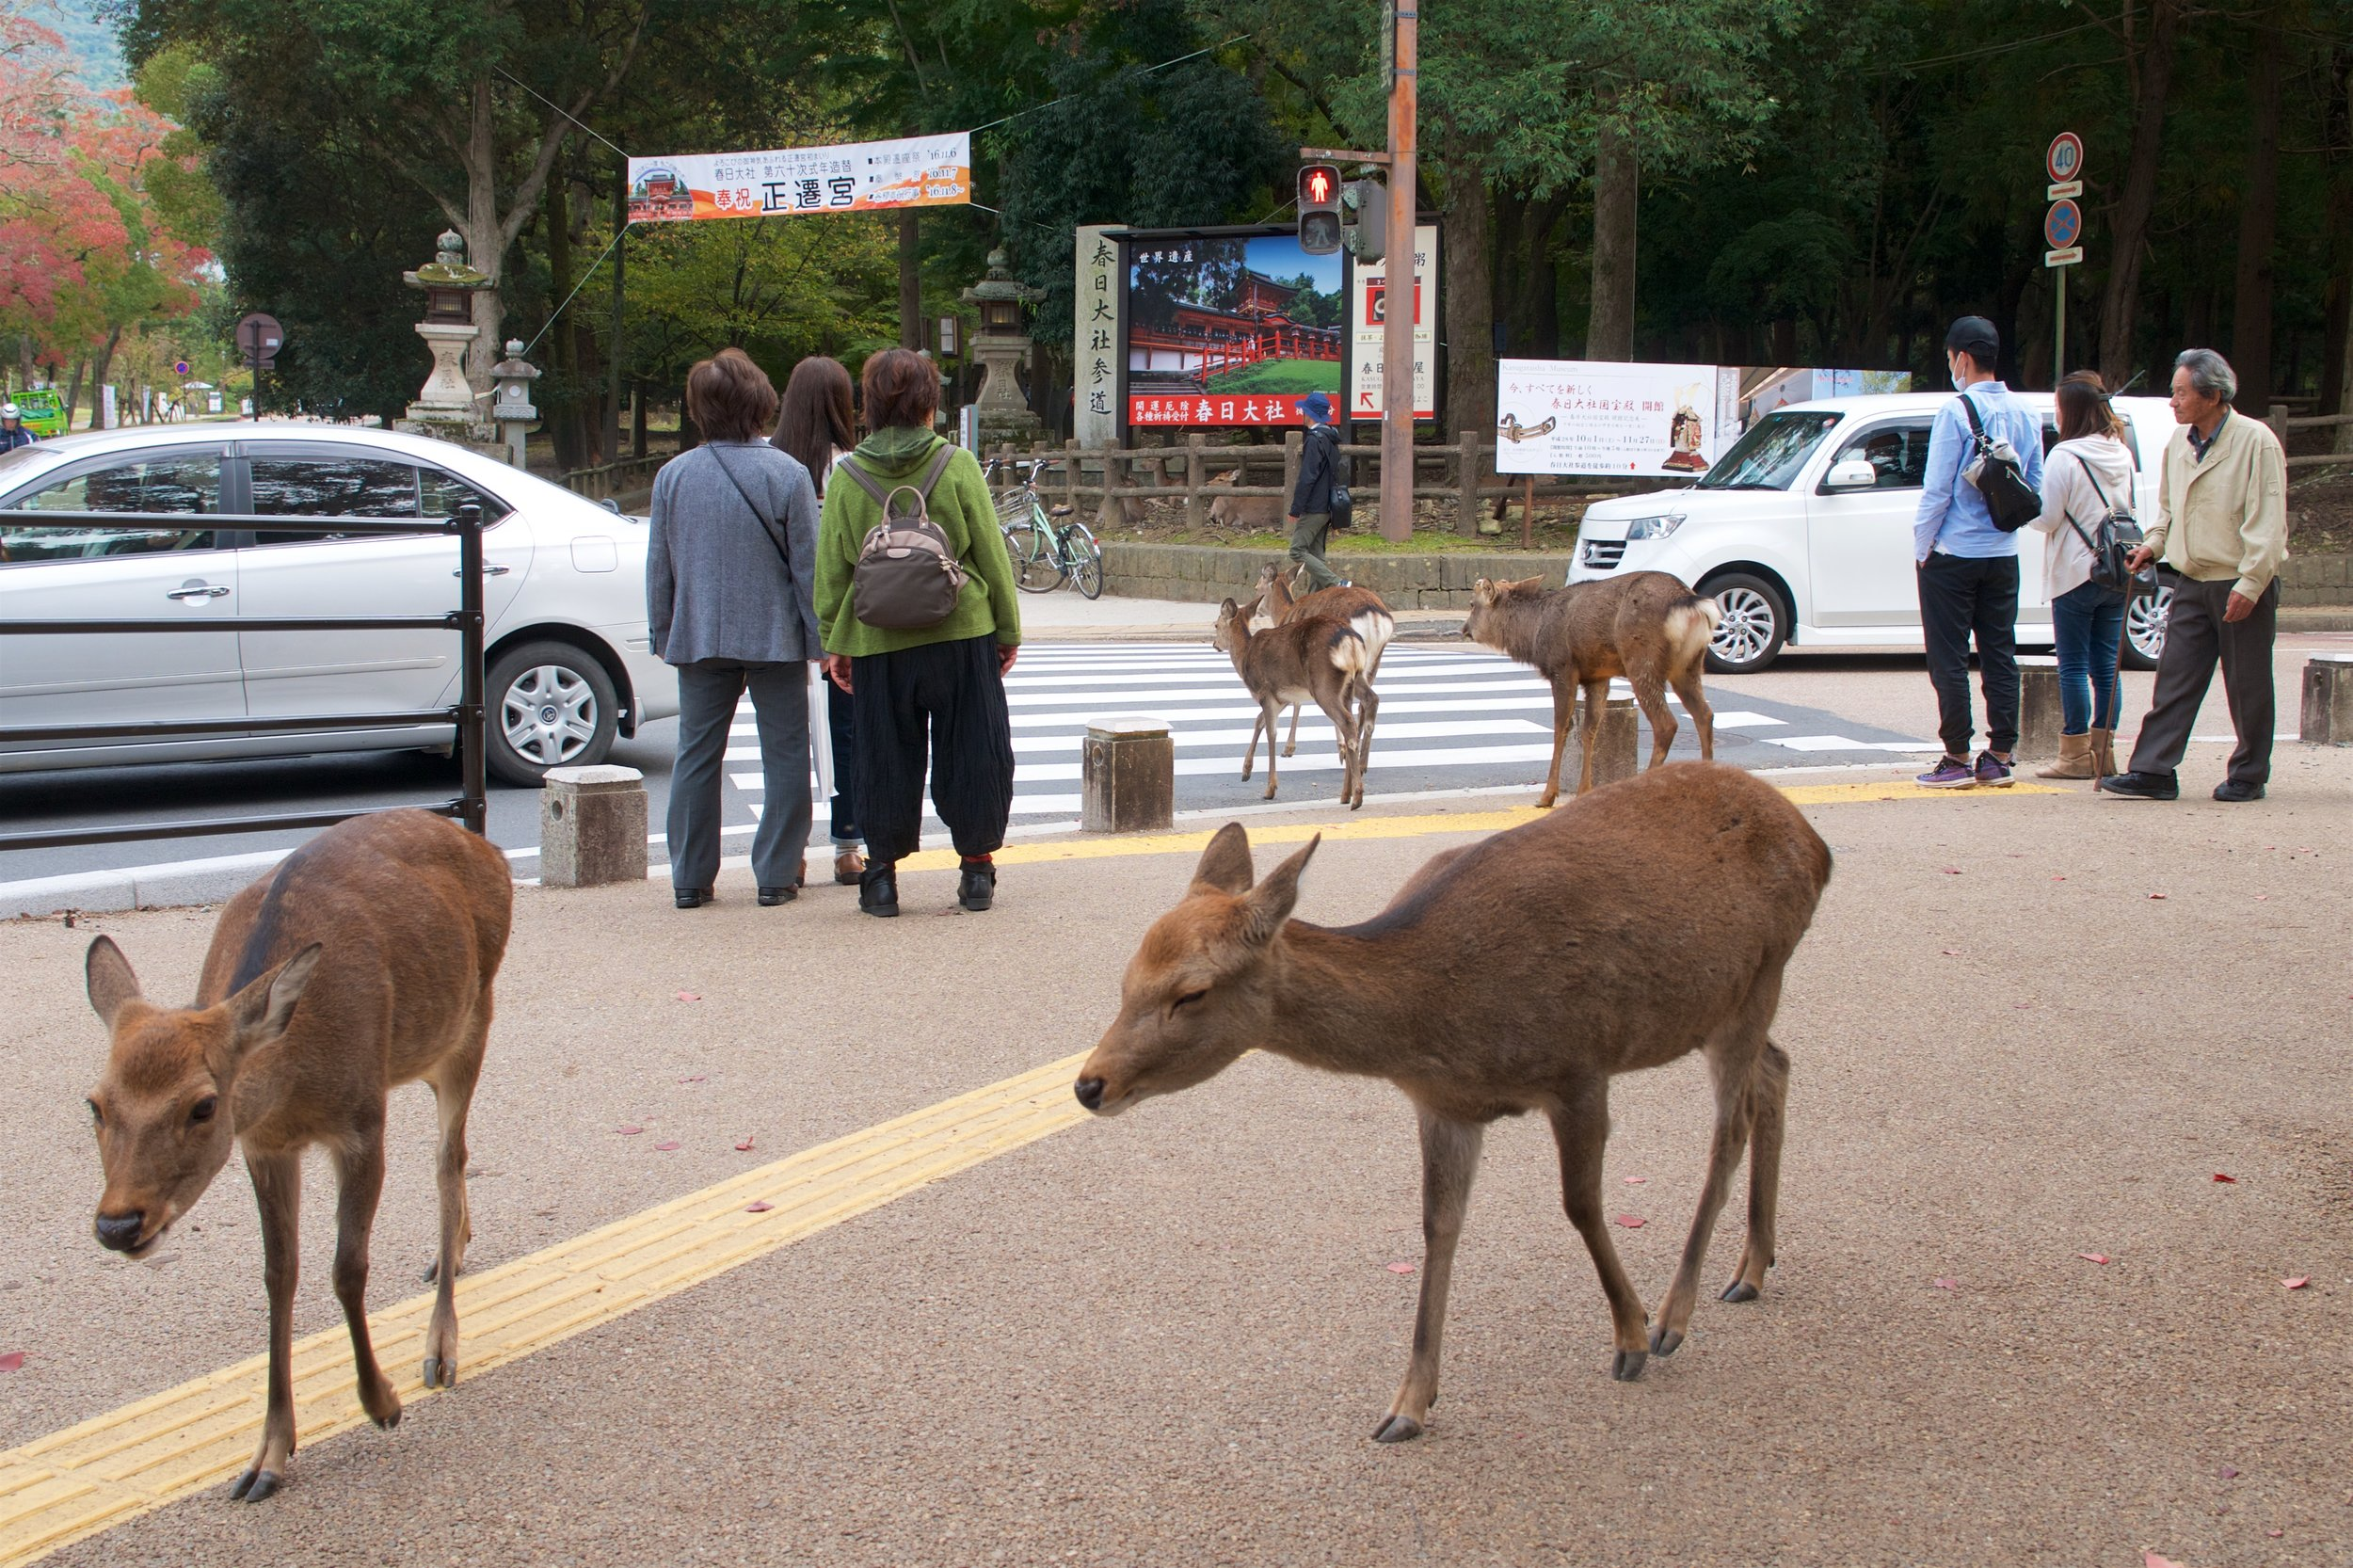 The deer facing away checked both ways before crossing the street